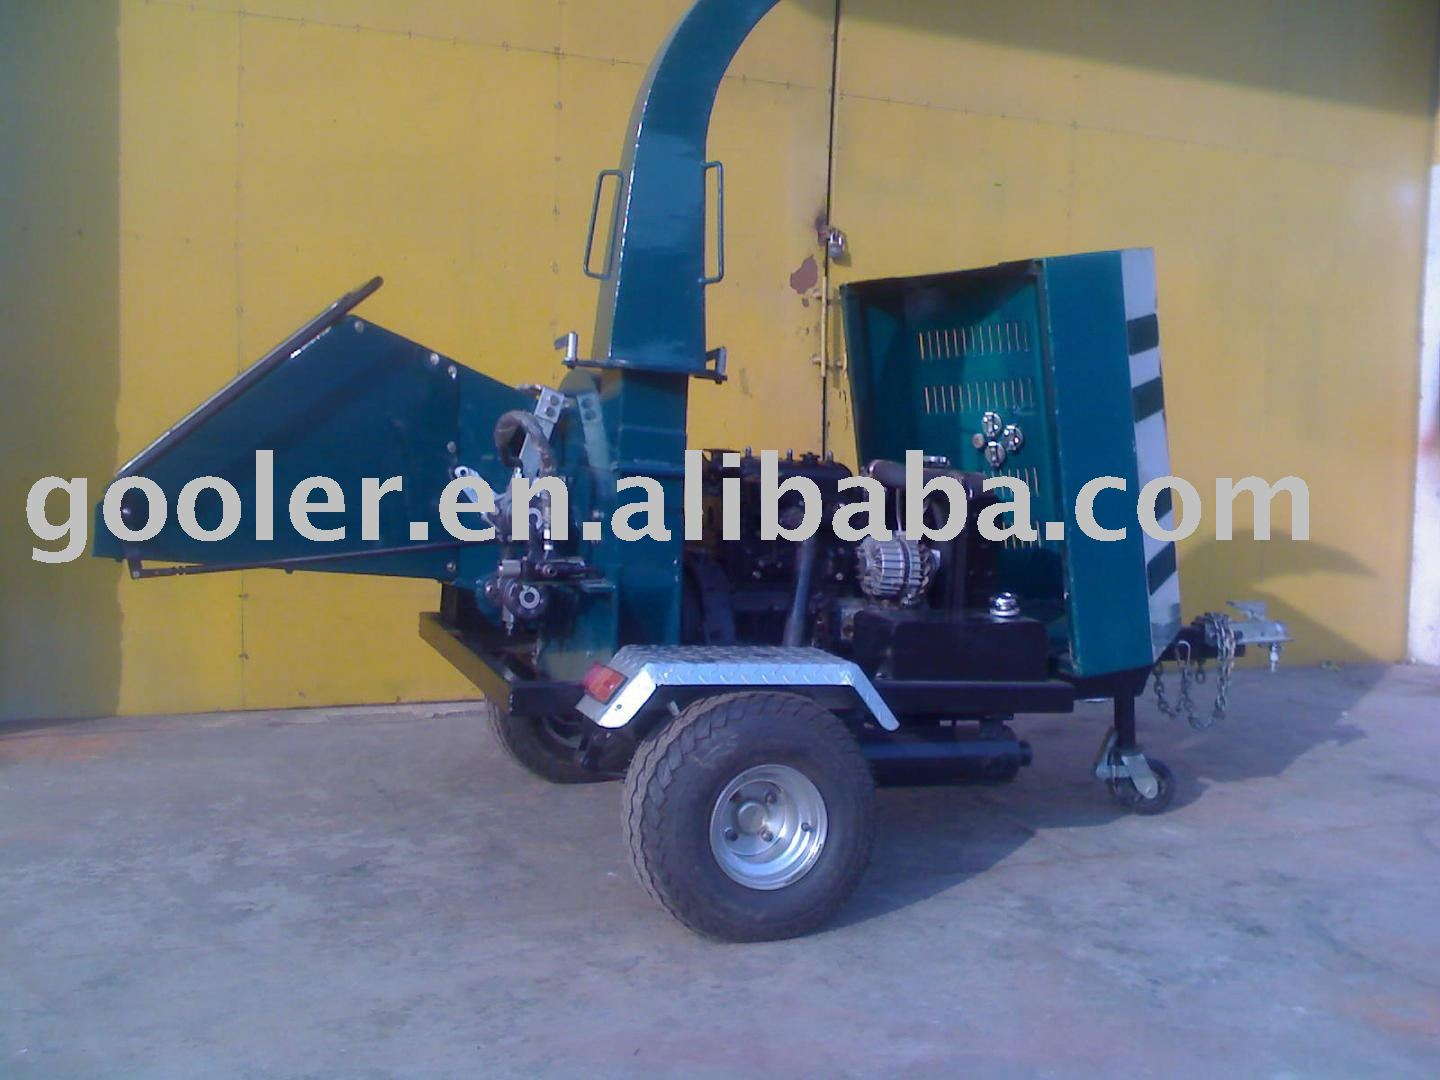 Diesel wood chipper/shredder, industrial wood chipper WC-40A